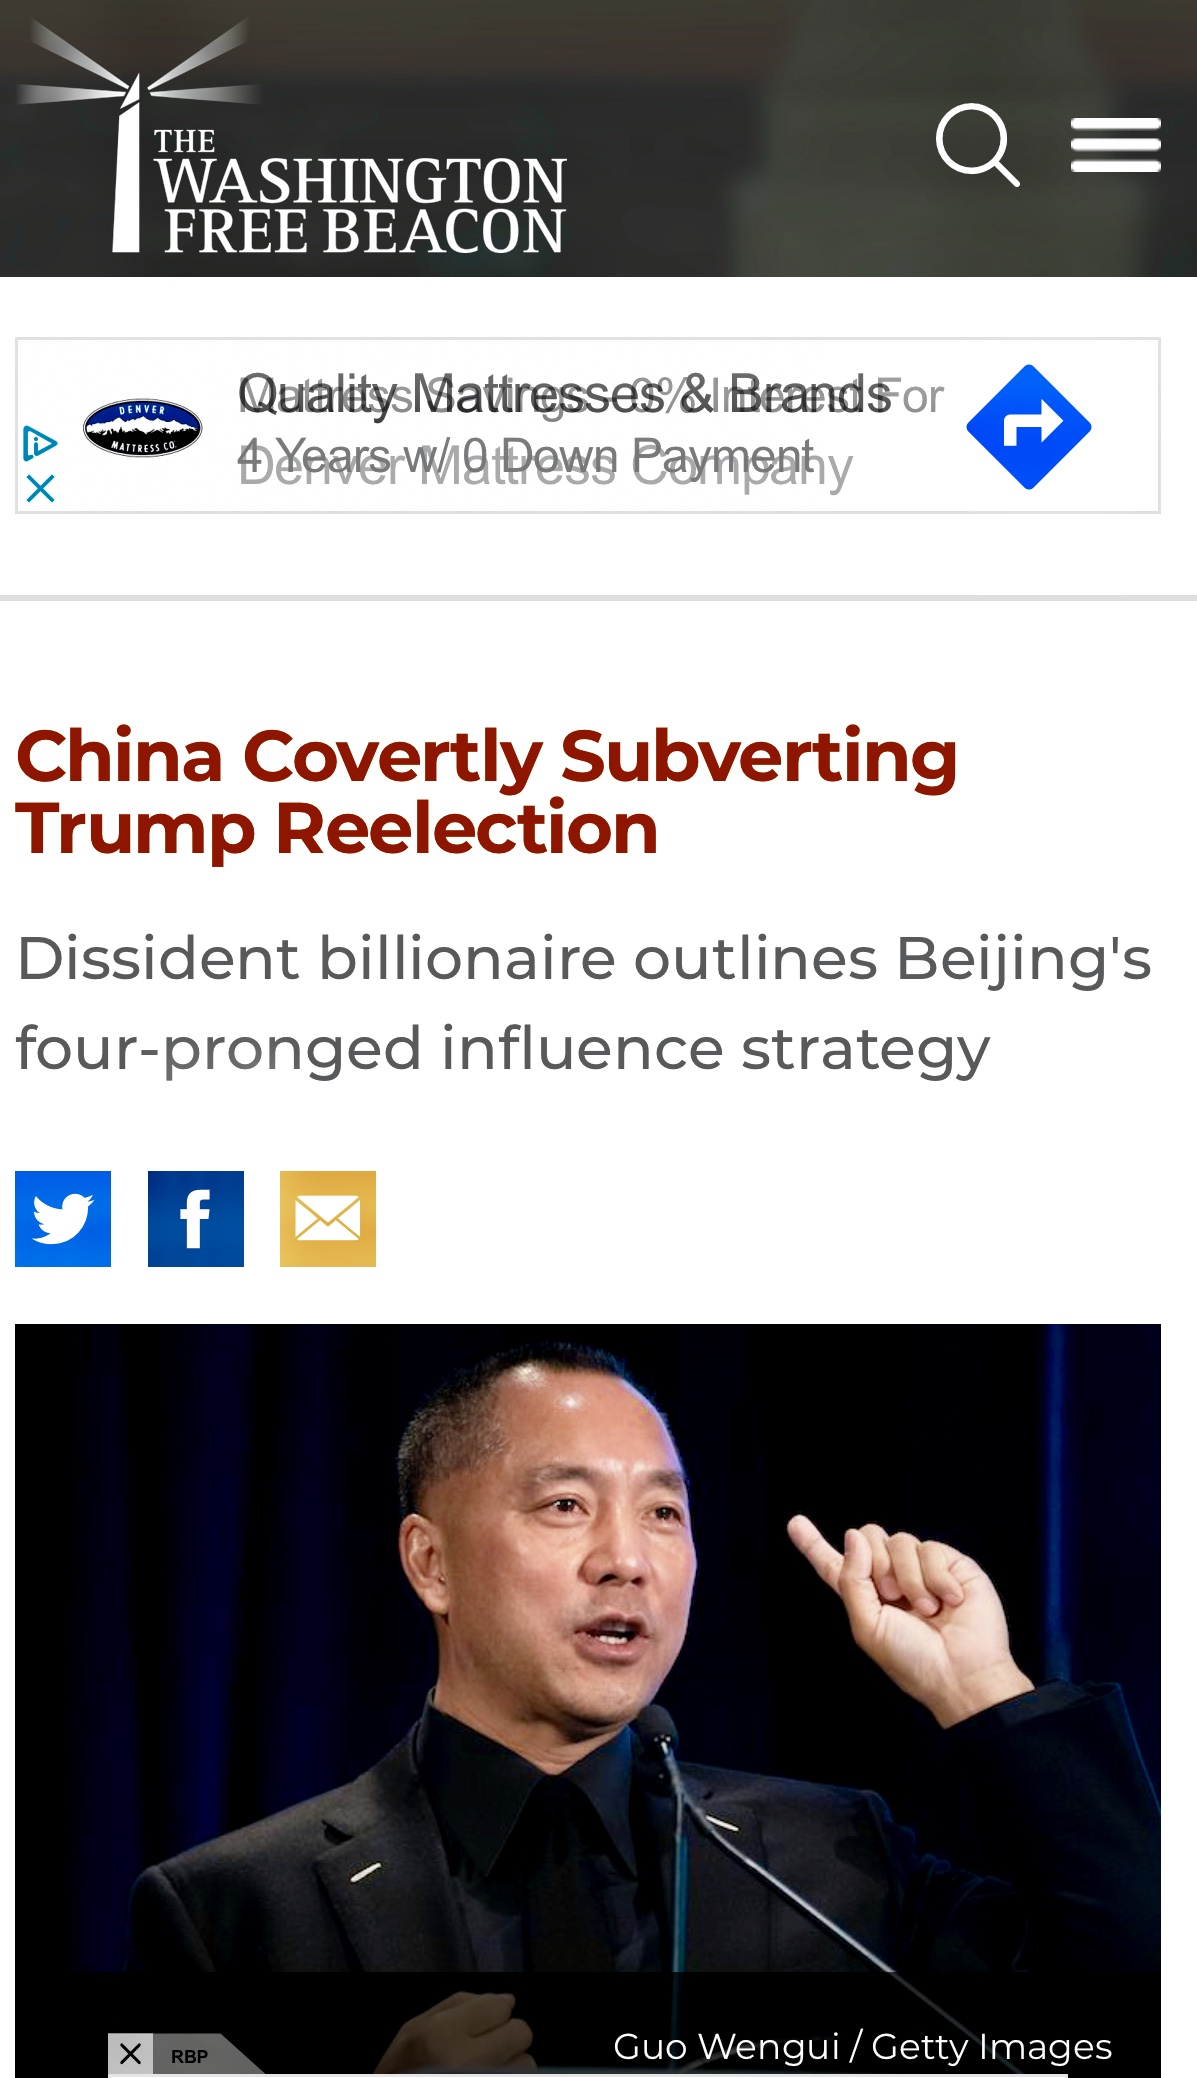 China Covertly Subverting Trump Reelection